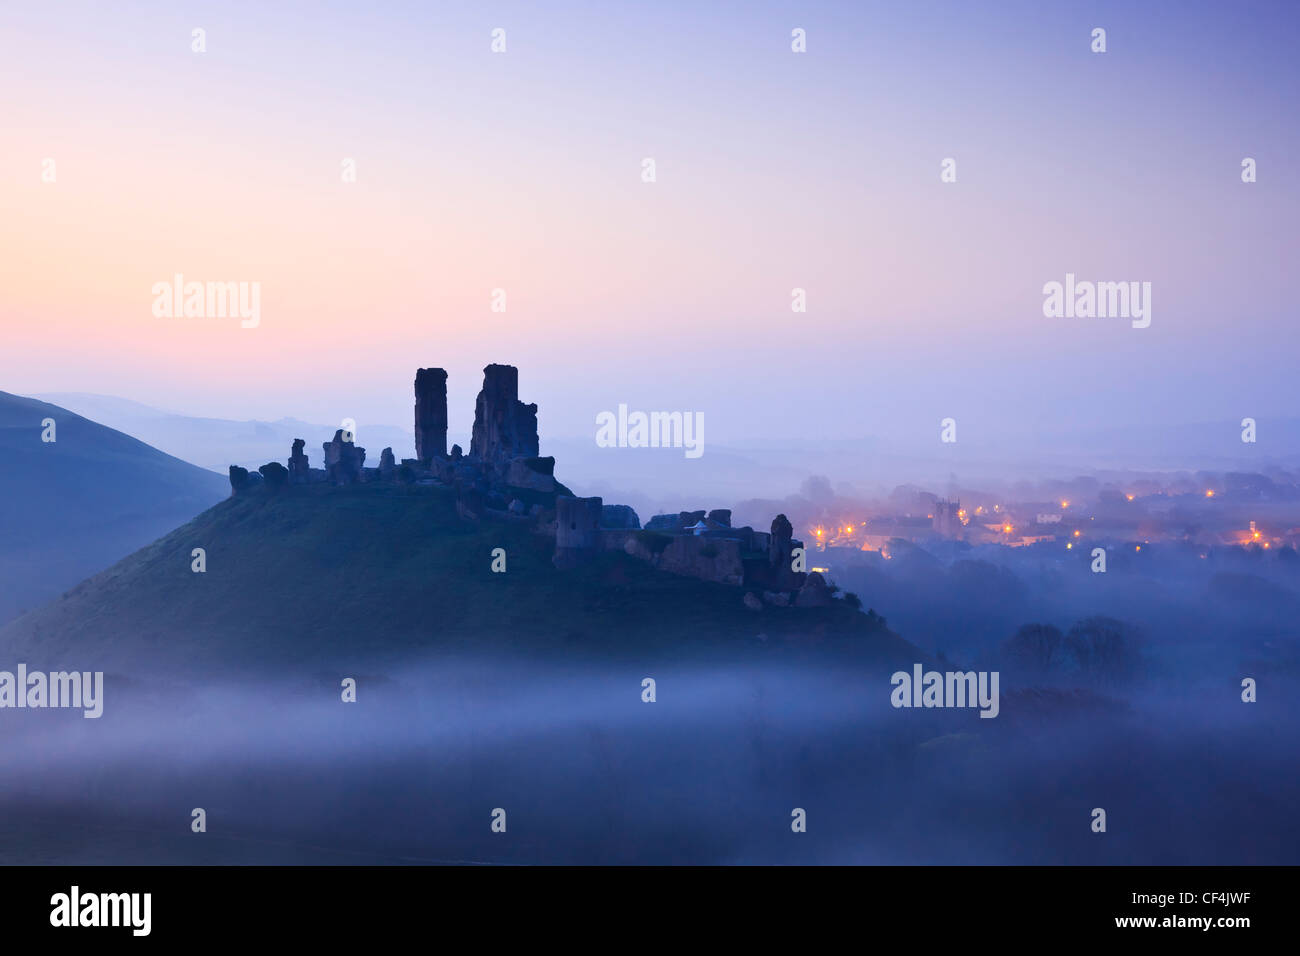 Corfe Castle, dating back to the 11th century, rising above pre-dawn mist. - Stock Image